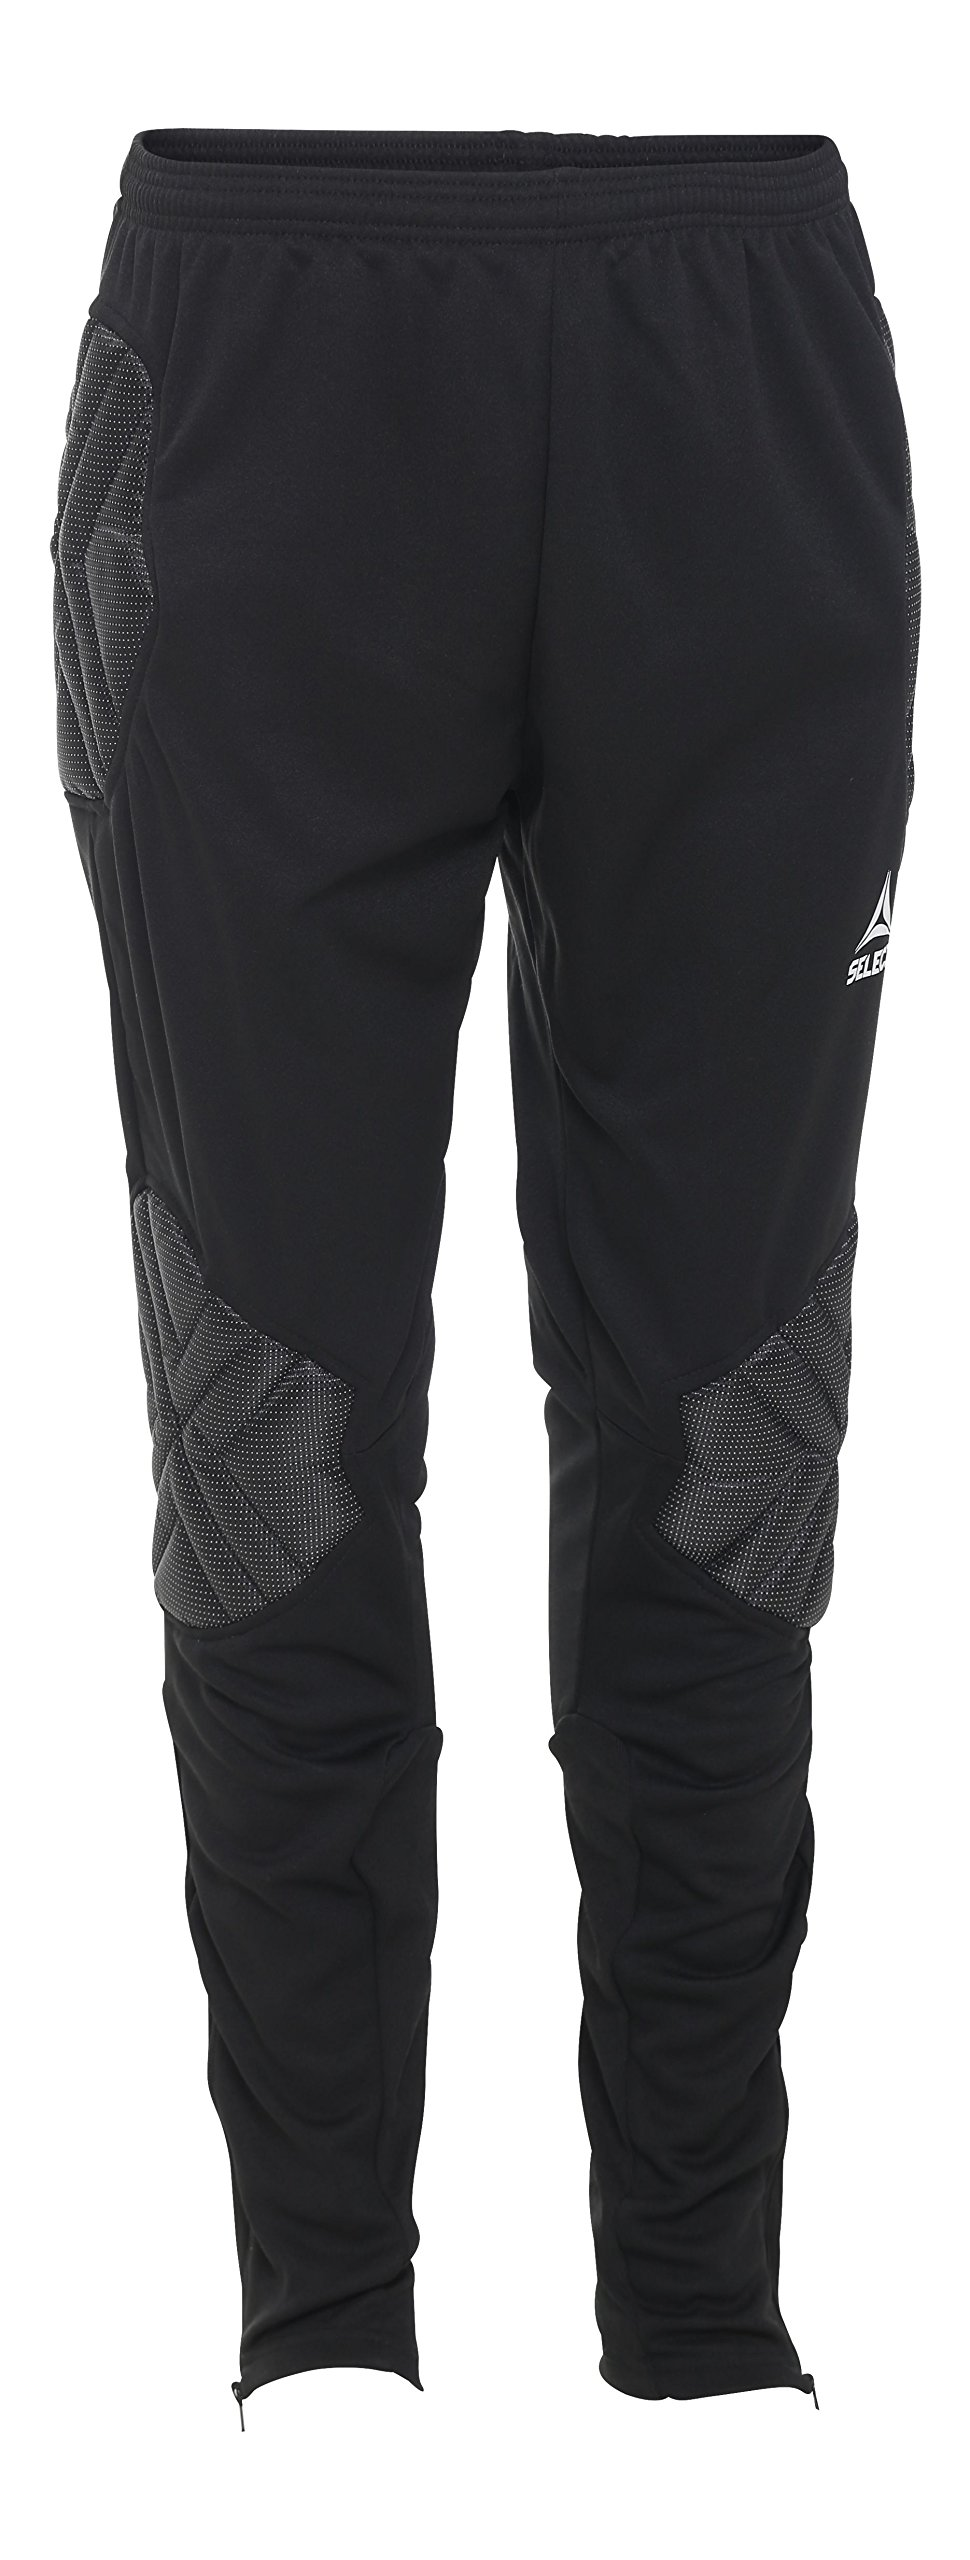 Select Utah Goalkeeper Pants, Black, Adult X-Large by Select